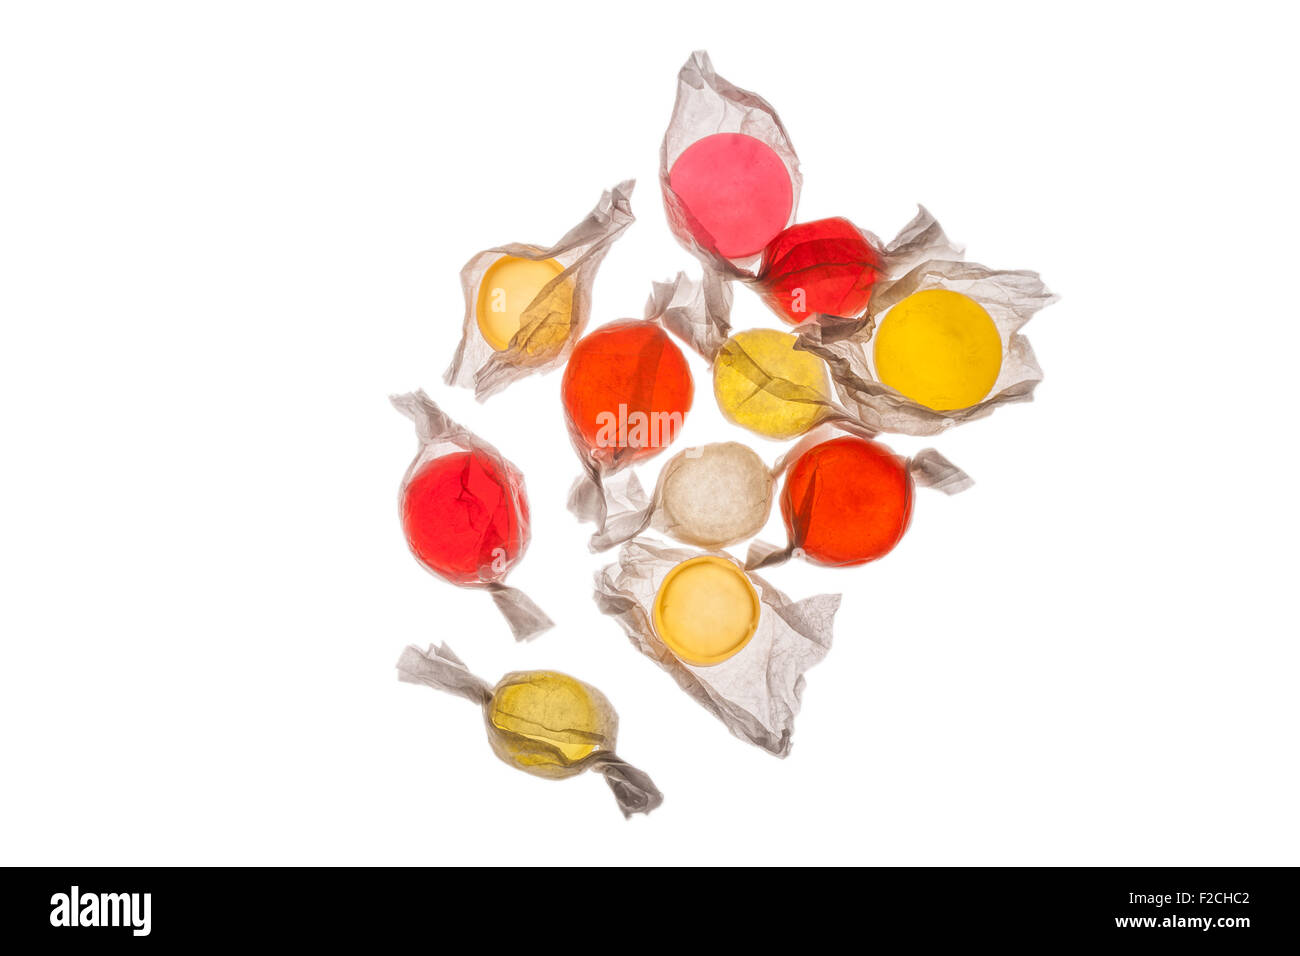 overhead view of orange, yellow, red, pink candy in wrappers on light table - Stock Image